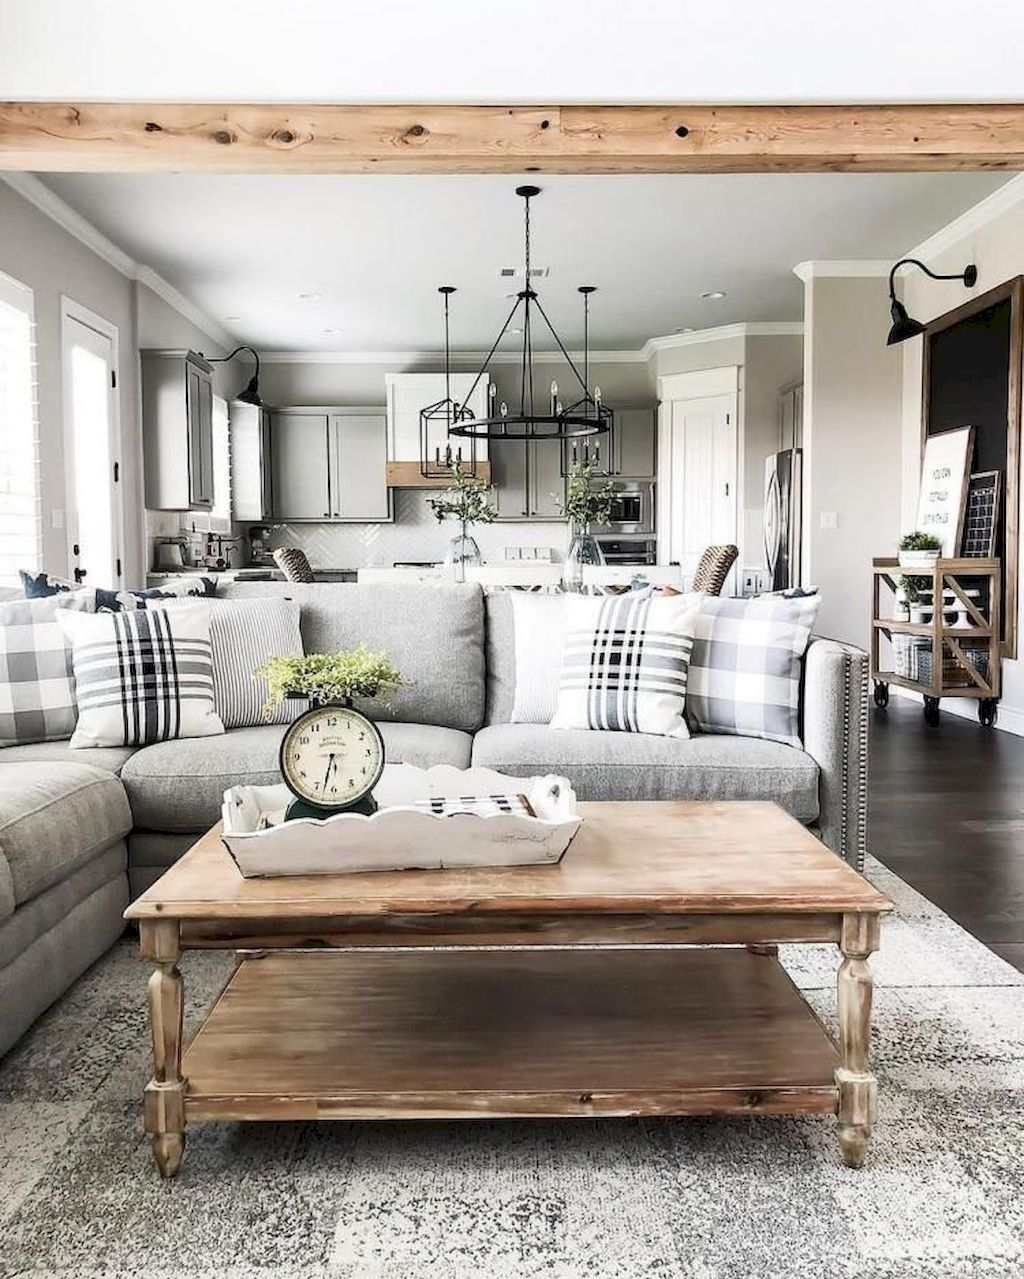 Farmhouse Living Room Colors: These 20 Farmhouse Living Room Decor And Design Ideas Are